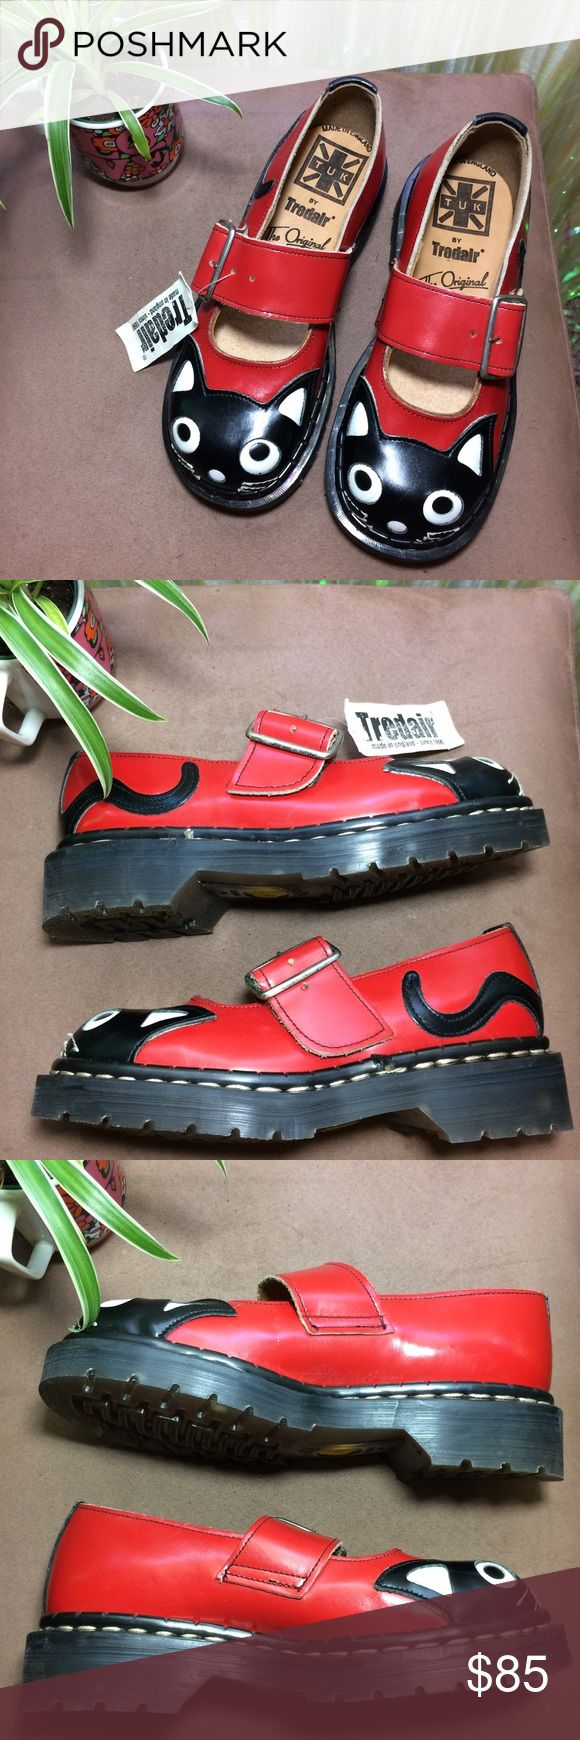 "Vintage Tredair Red Cat Kitty Leather Mary Janes MEOW AGAIN! 🐱 Vintage Tredair Red Cat Kitty Leather Mary Janes. Made in England 🇬🇧 UK 3. US Women's 5. Signs of age - spots on soles. Never worn. Deadstock.   Insole- 8.5""  *I'm not responsible for the fit of an item*  🚫 I don't discuss prices through comments, please use the offer button!  ⚡️ Same-day or next-day shipping 📬 All packages handled with care 📦 Bundle 2+ items for a discount 👽 Follow for new items & sale updates 🏡 Pet-free…"